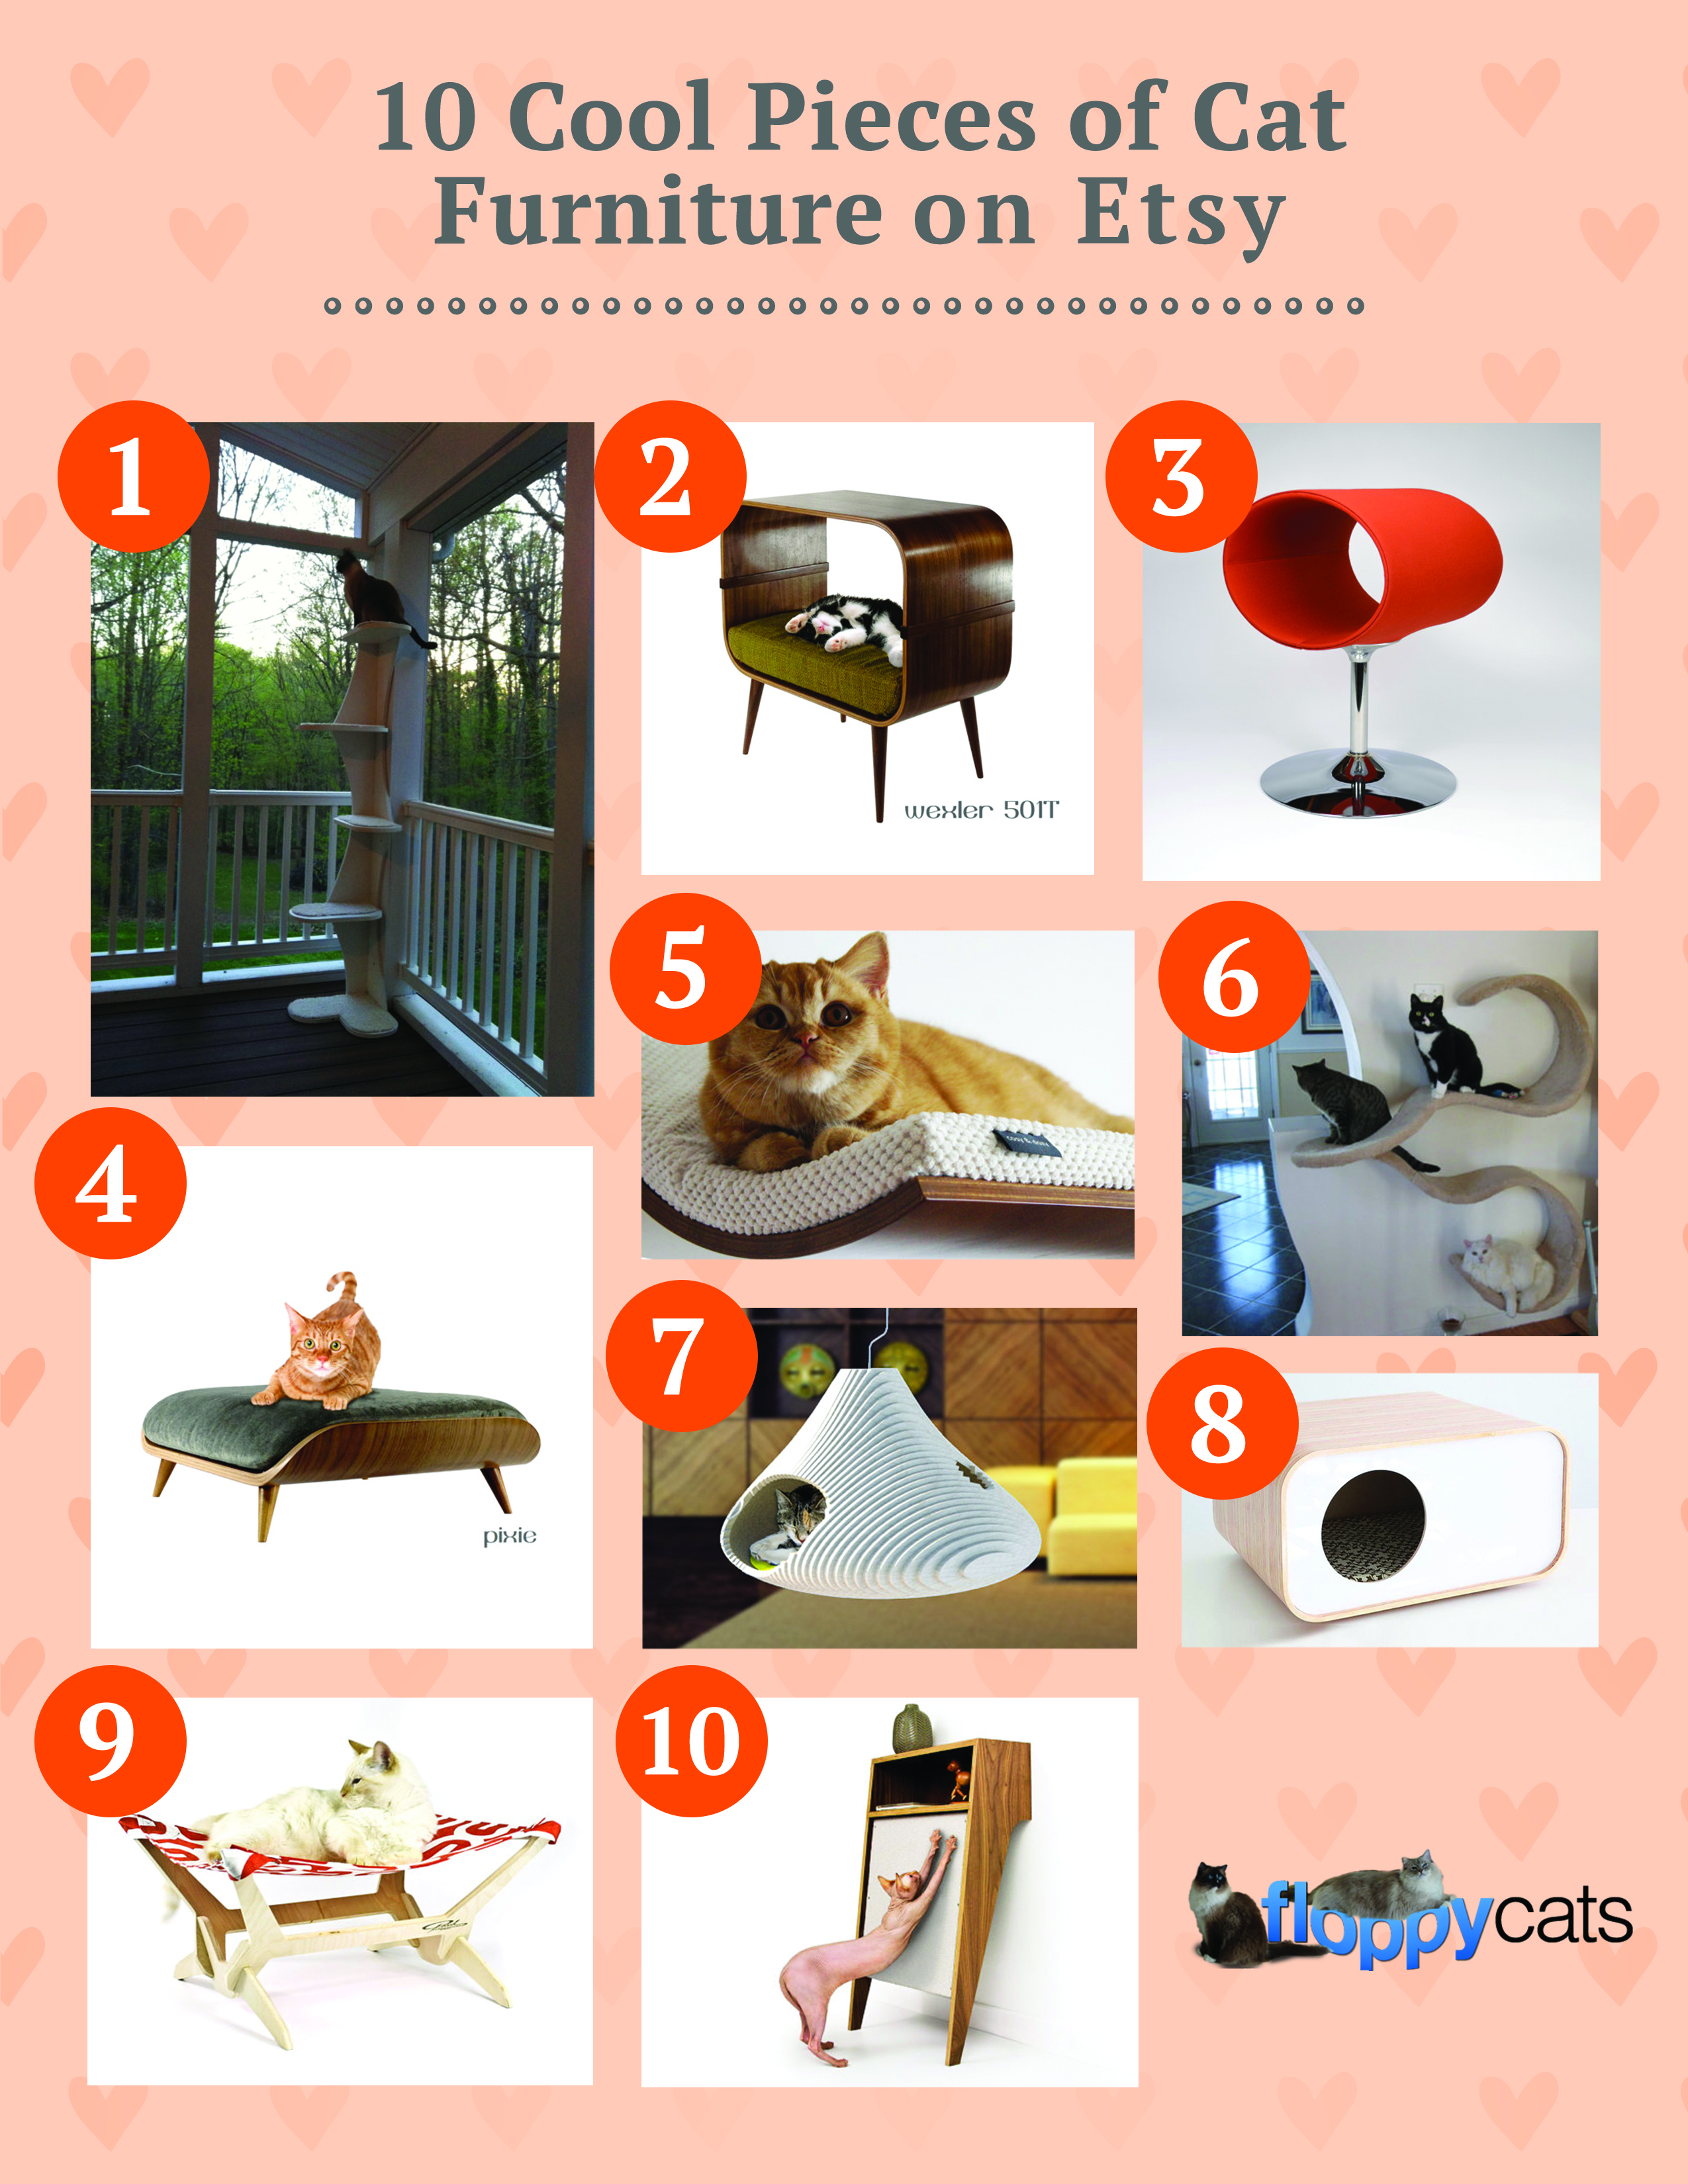 10 Cool Pieces of Cat Furniture on Etsy